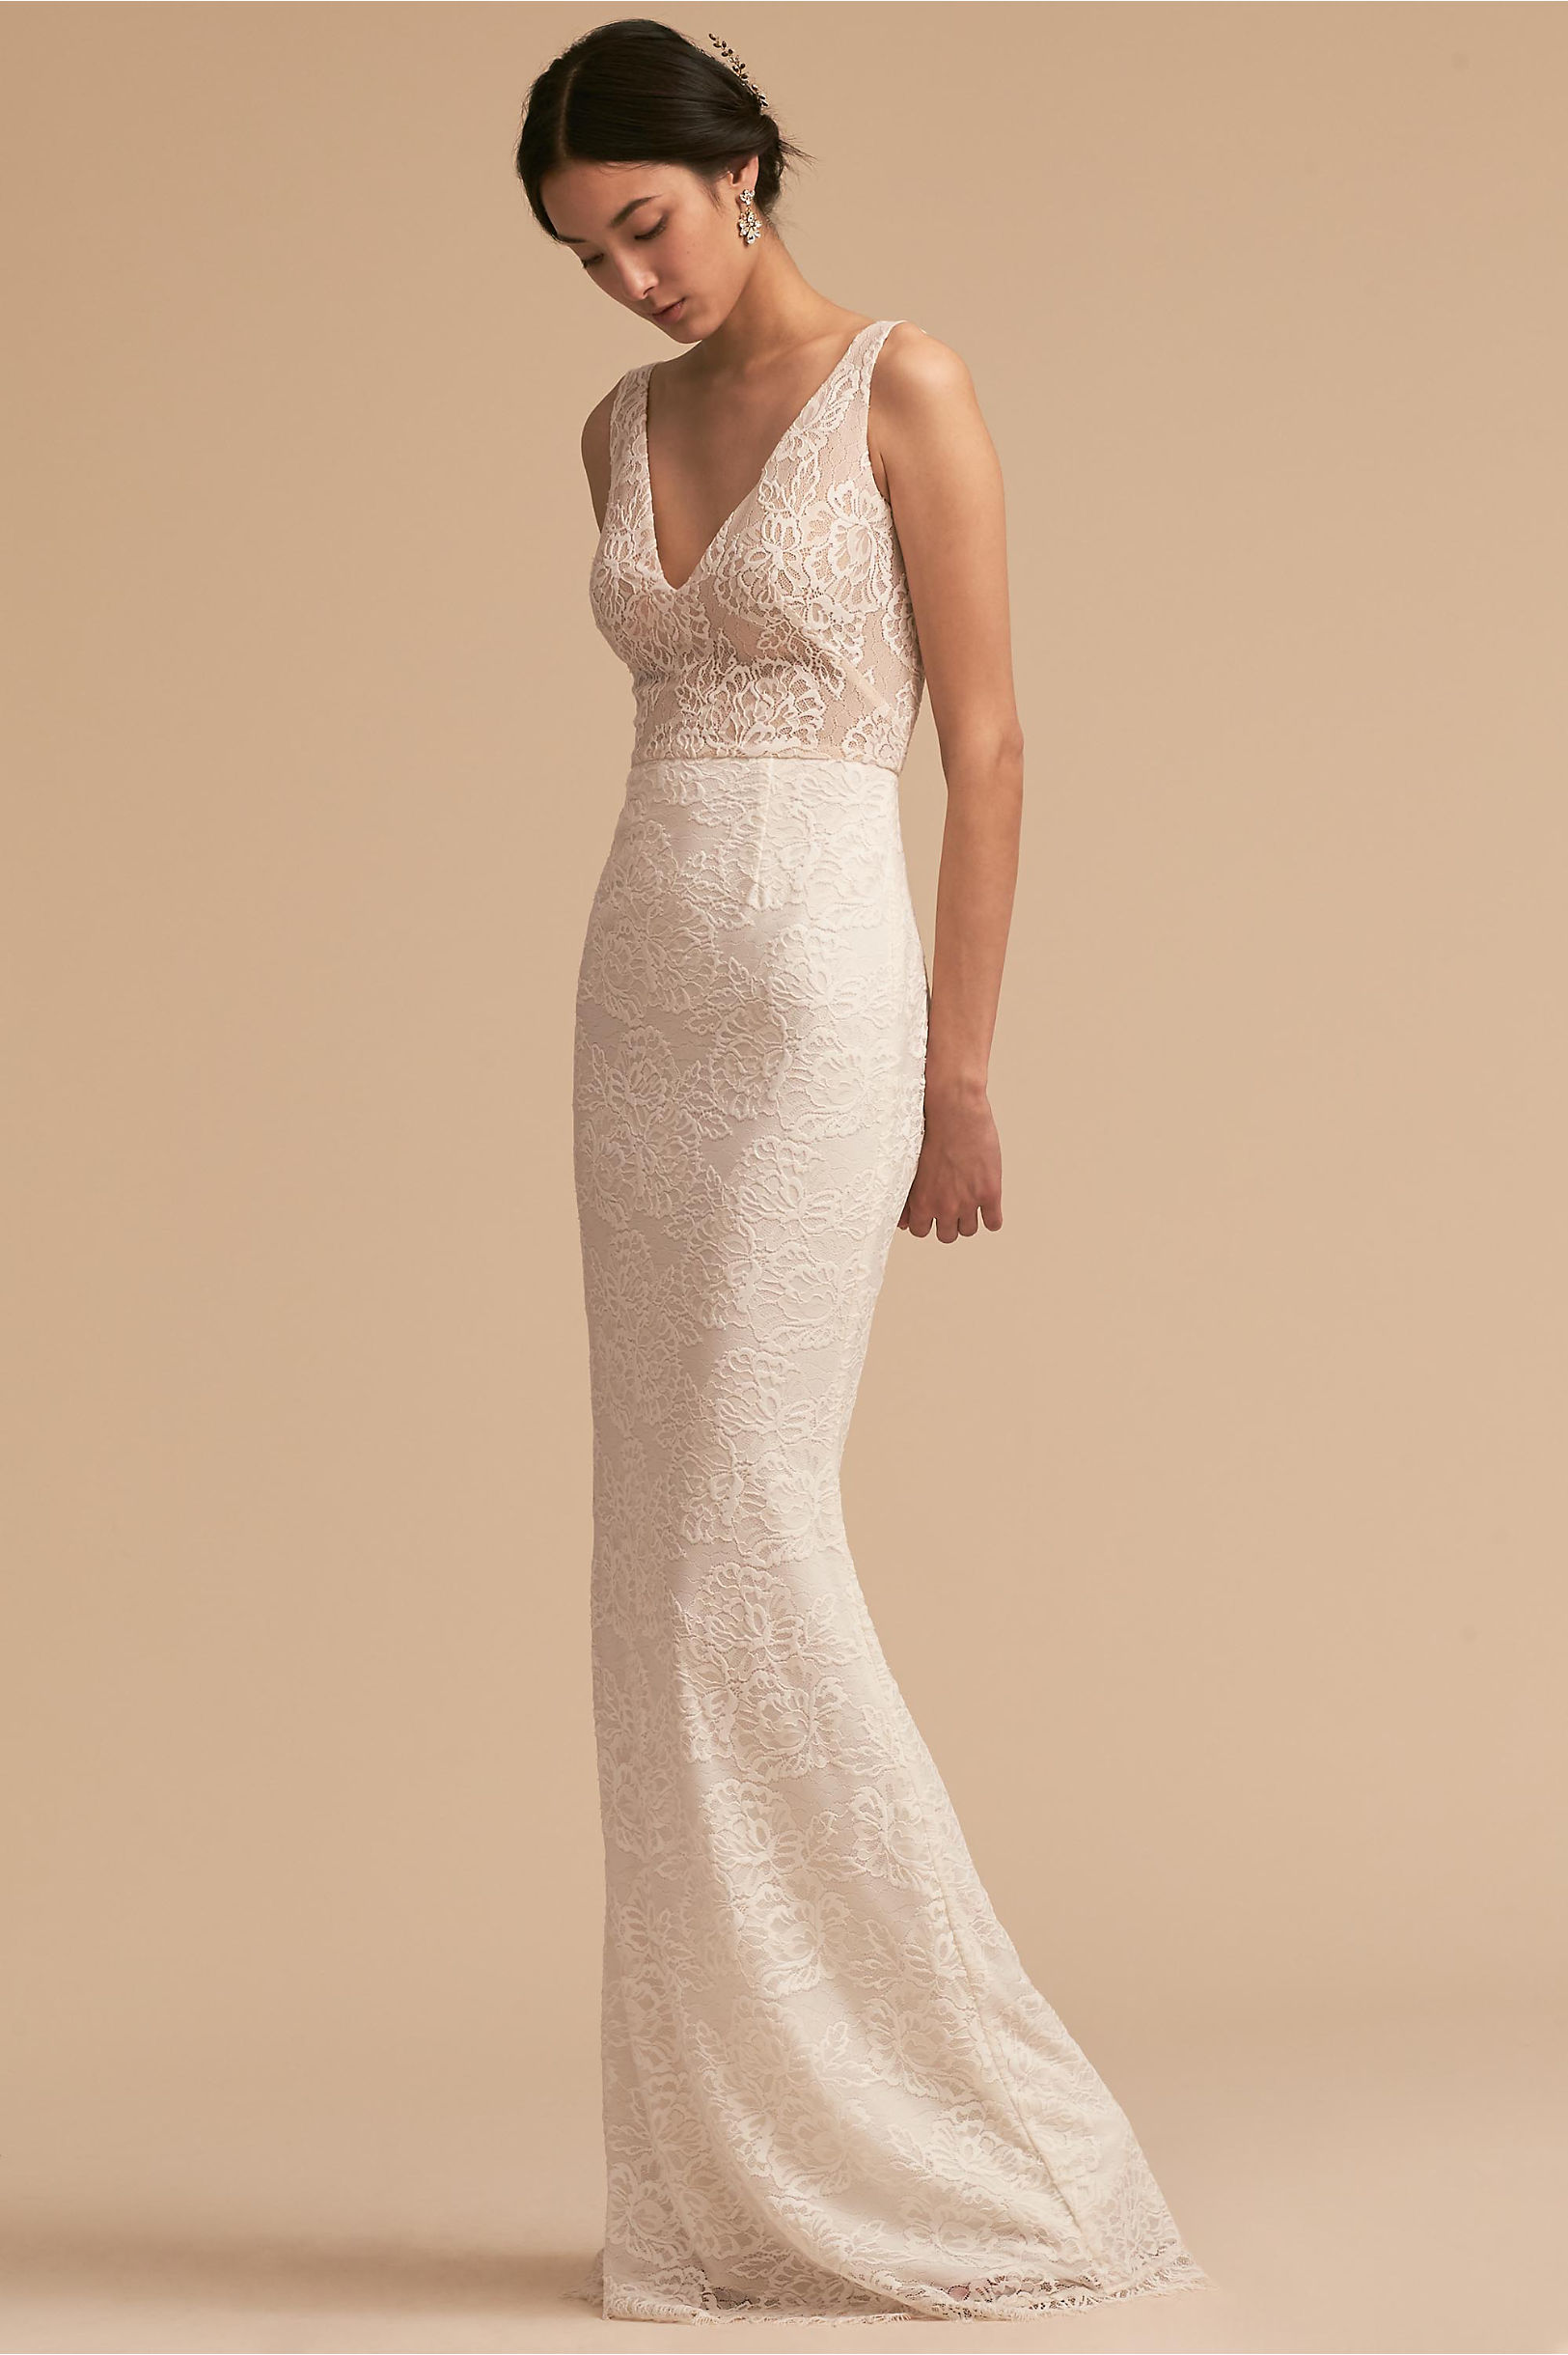 Wedding dresses gowns bhldn indiana gown indiana gown ombrellifo Image collections